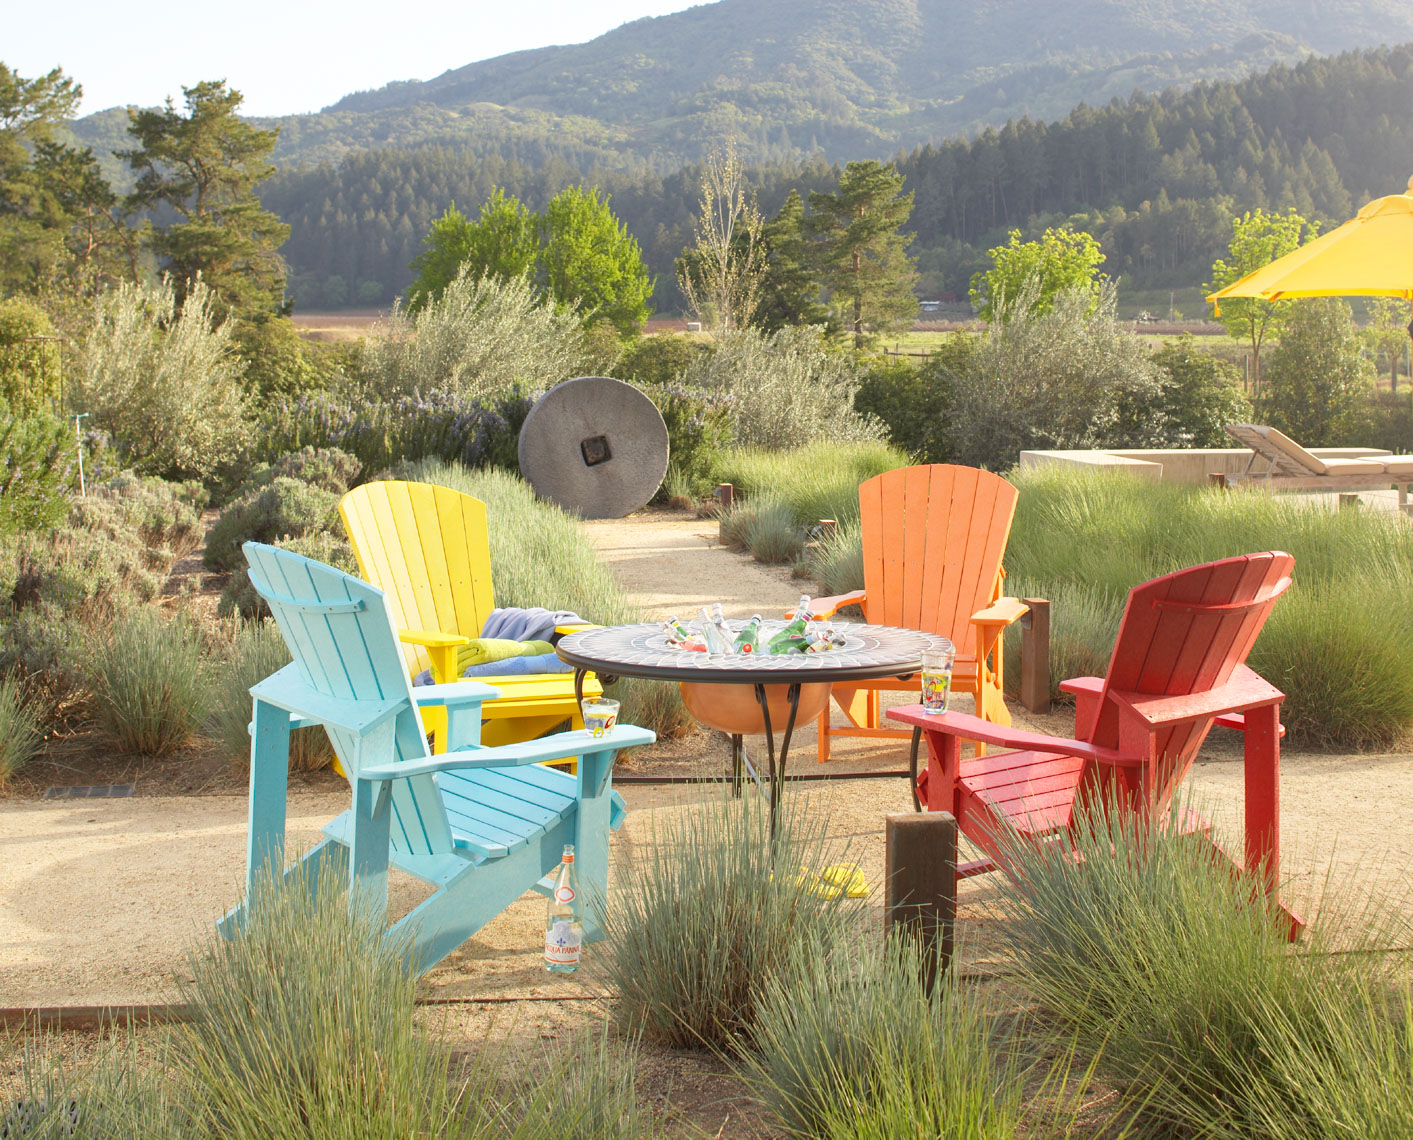 Collection of colorful adirondack chairs around fire bowl in wine country setting